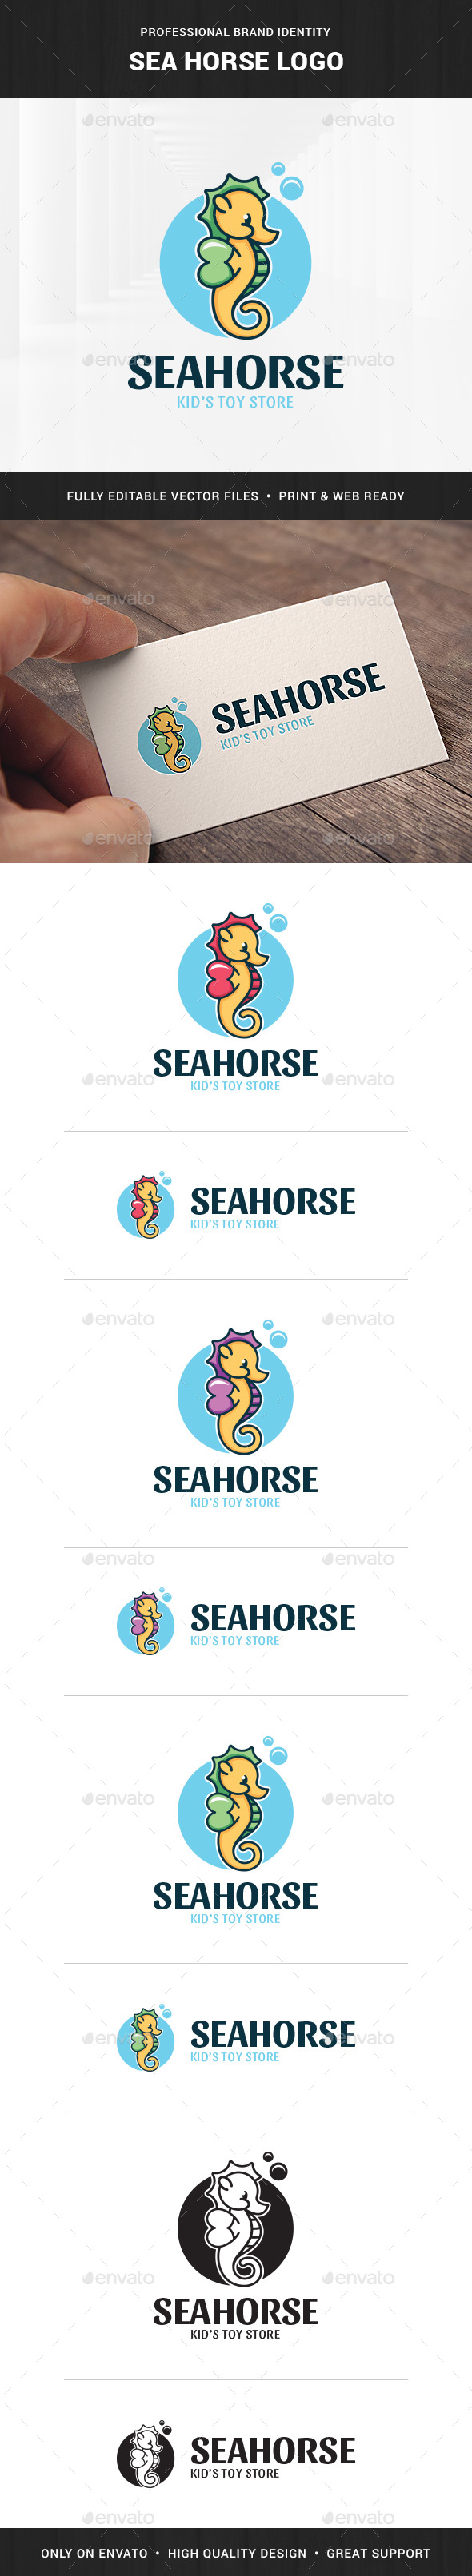 Seahorse Logo Template - Animals Logo Templates